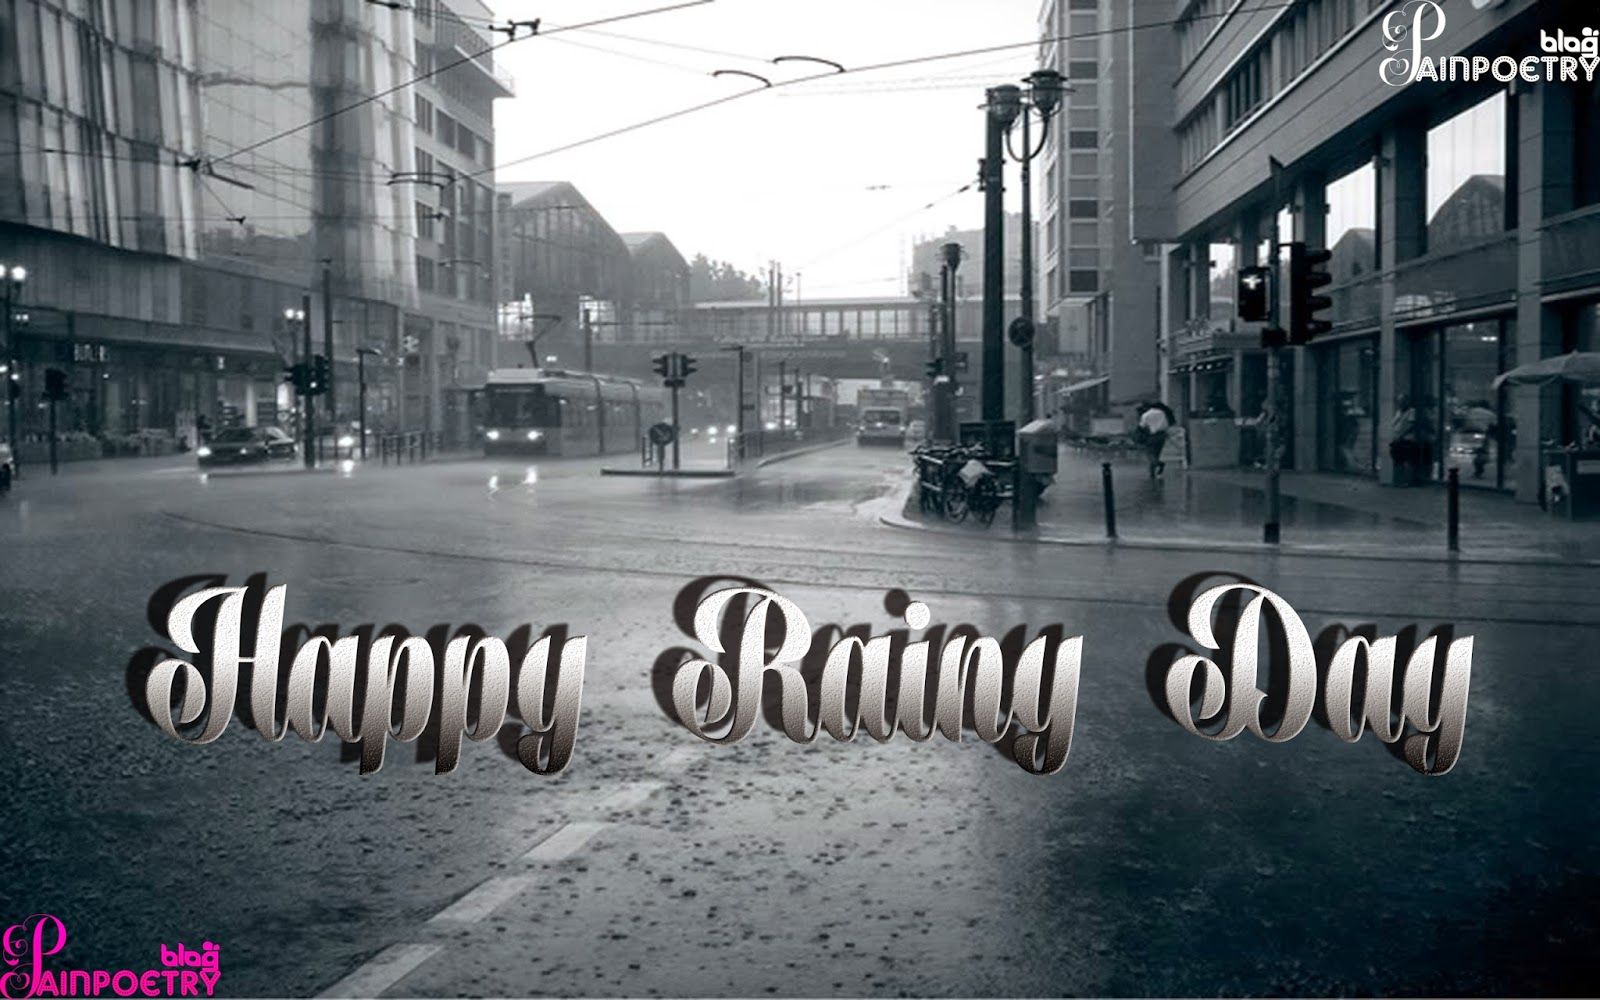 Rainy-Day-Rainy-Day-Photo-HD-Wide